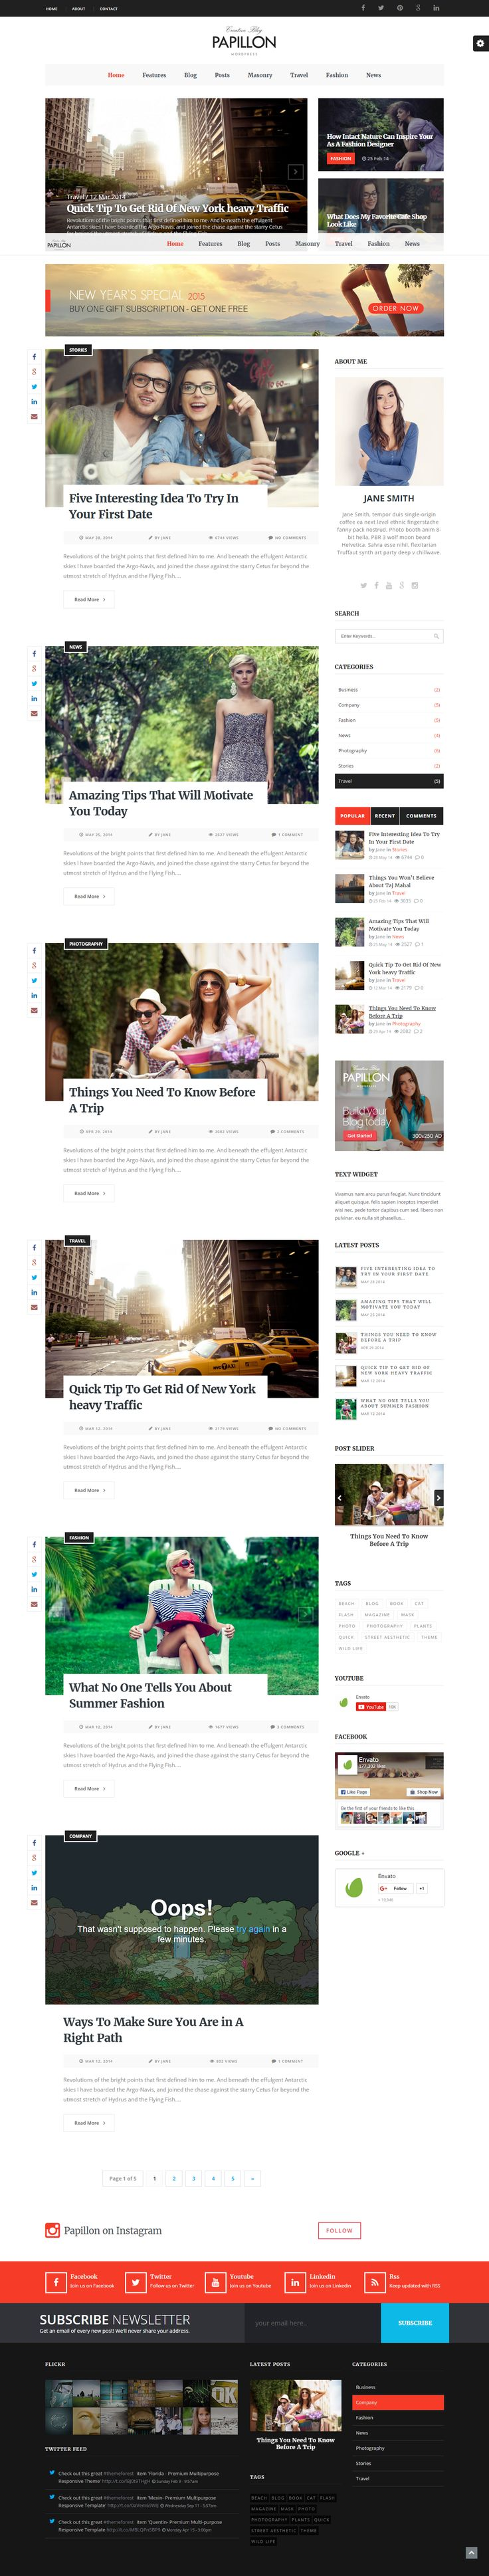 Papillon - Creative WordPress Blog Theme  Papillon is a premium, fully responsive, Retina-Ready WordPress theme with Modern Design. It's very code-light, making it quick to load, and has a pleasingly clean look that's ideal for Blog or Magazine. It comes with some great features – a theme options panel, drag and drop page builder and useful shortcodes.